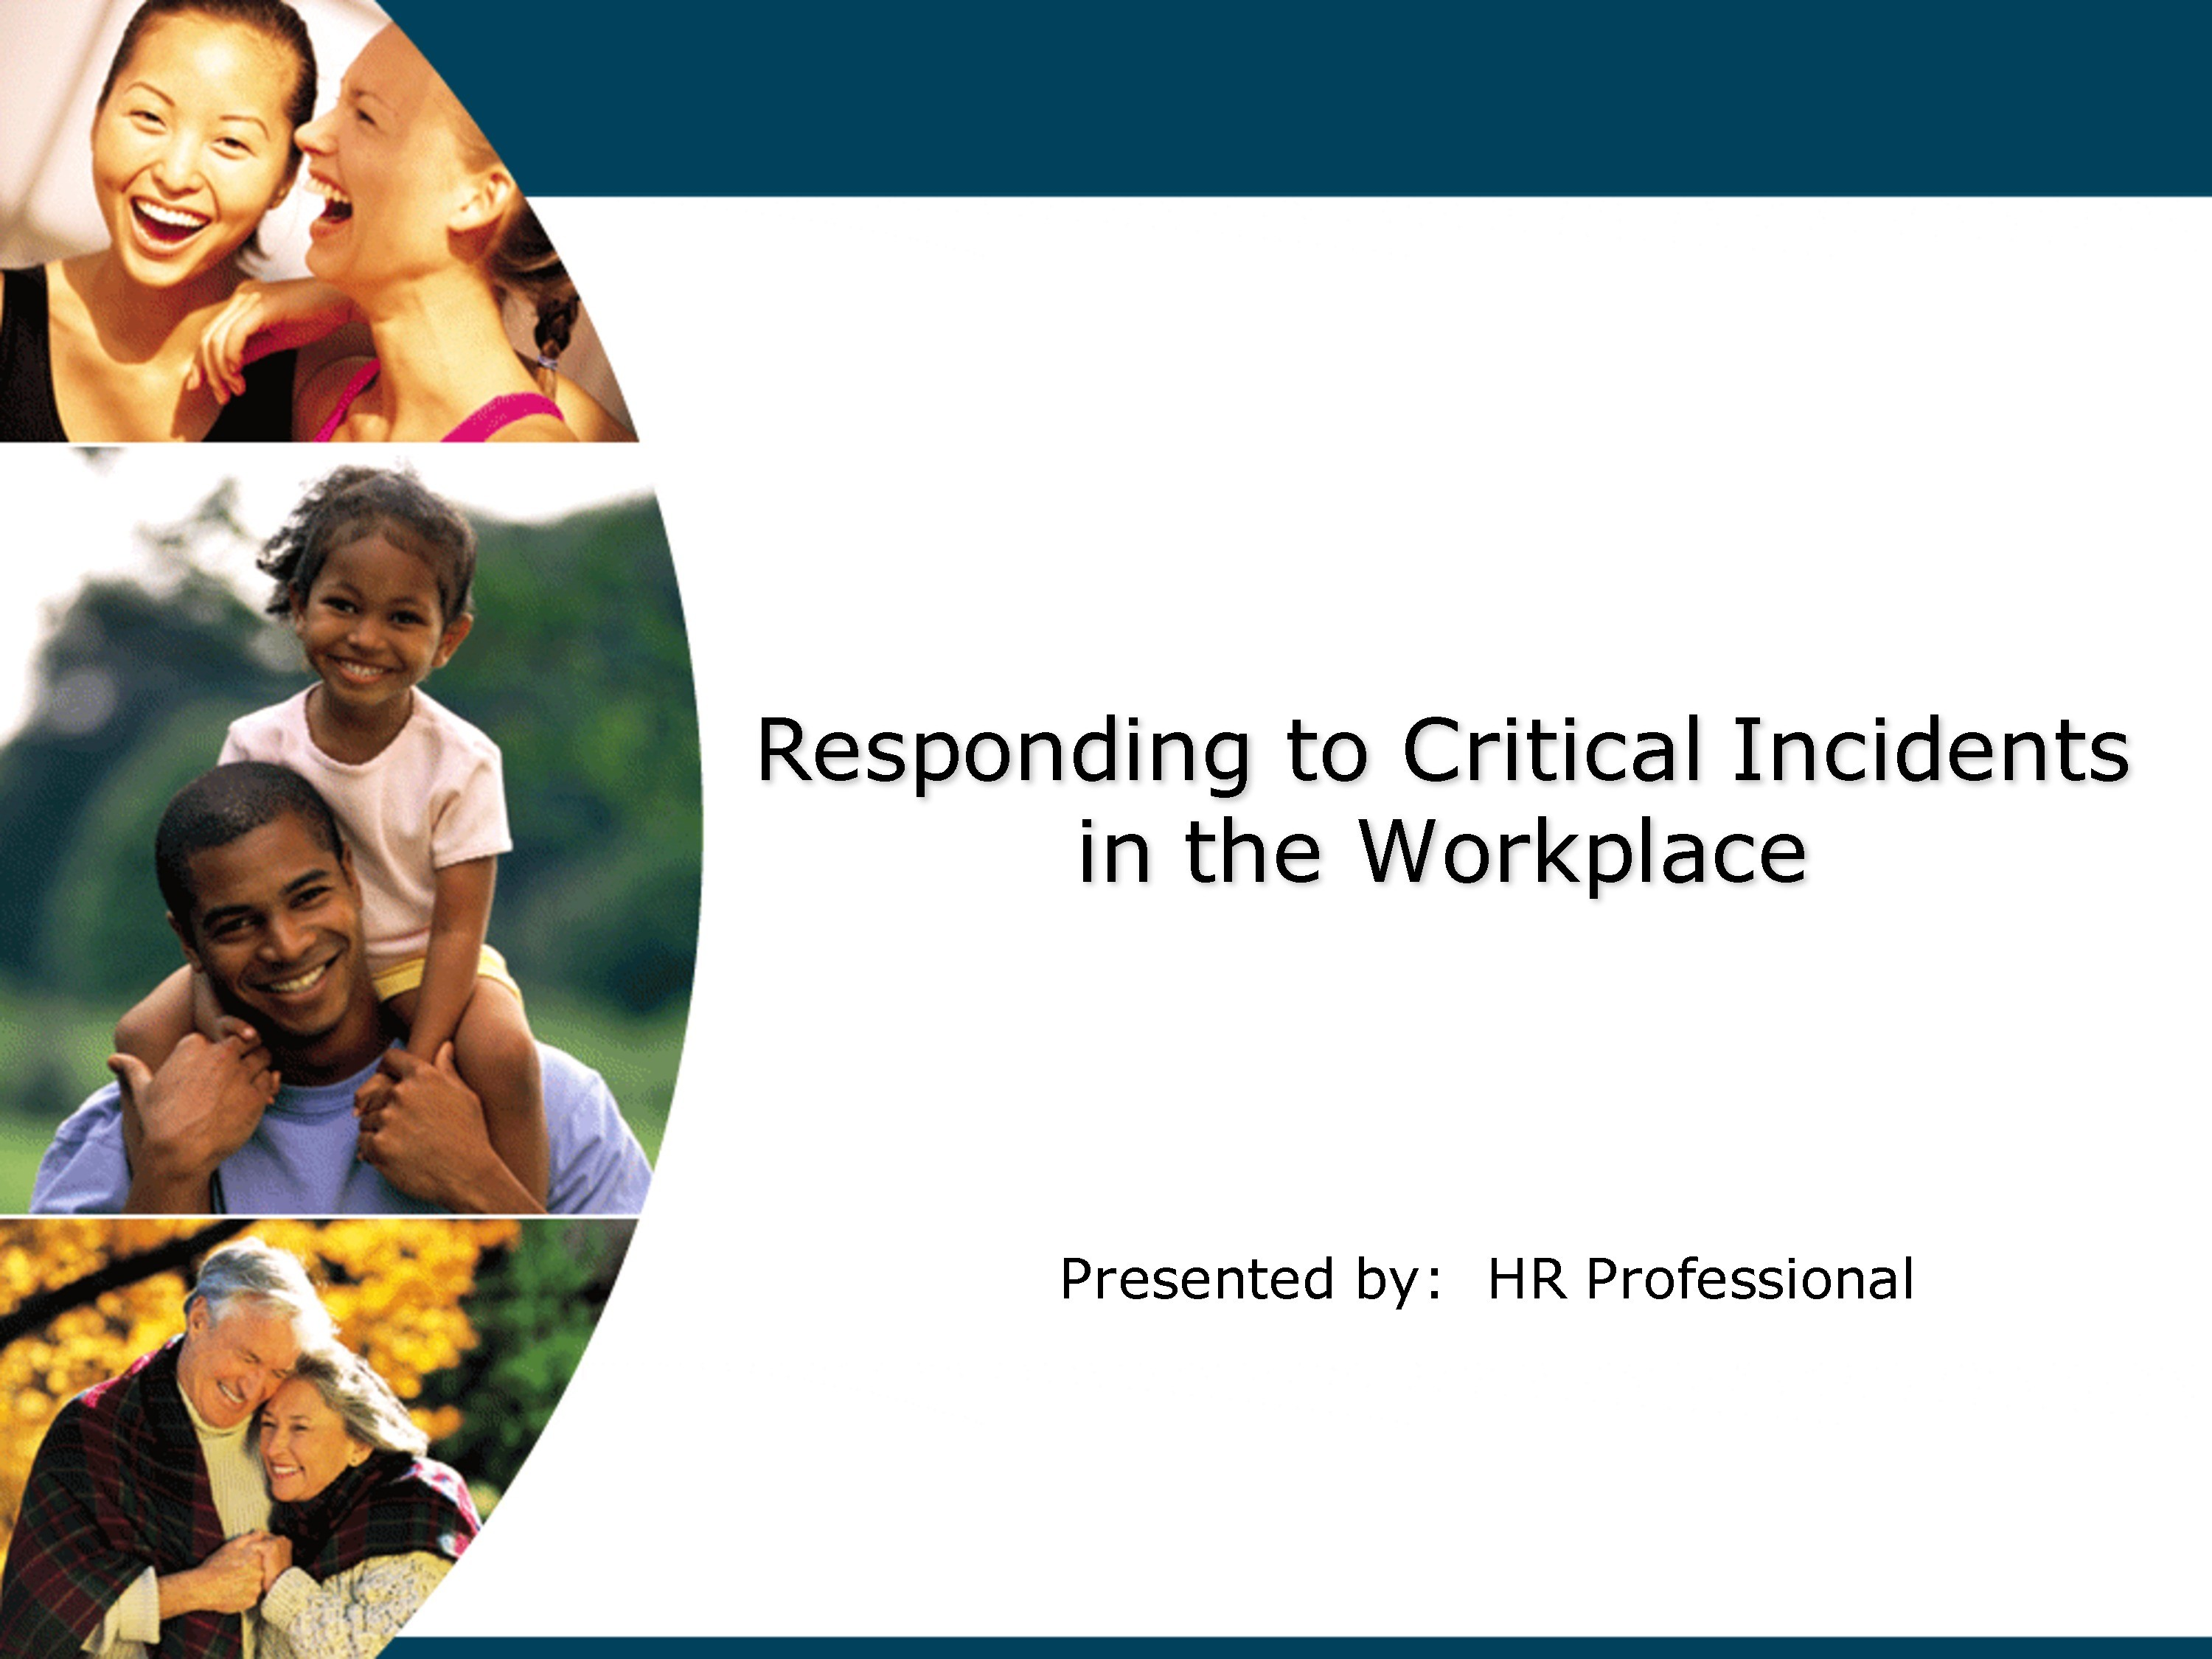 Responding to a Critical Incident in the Workplace